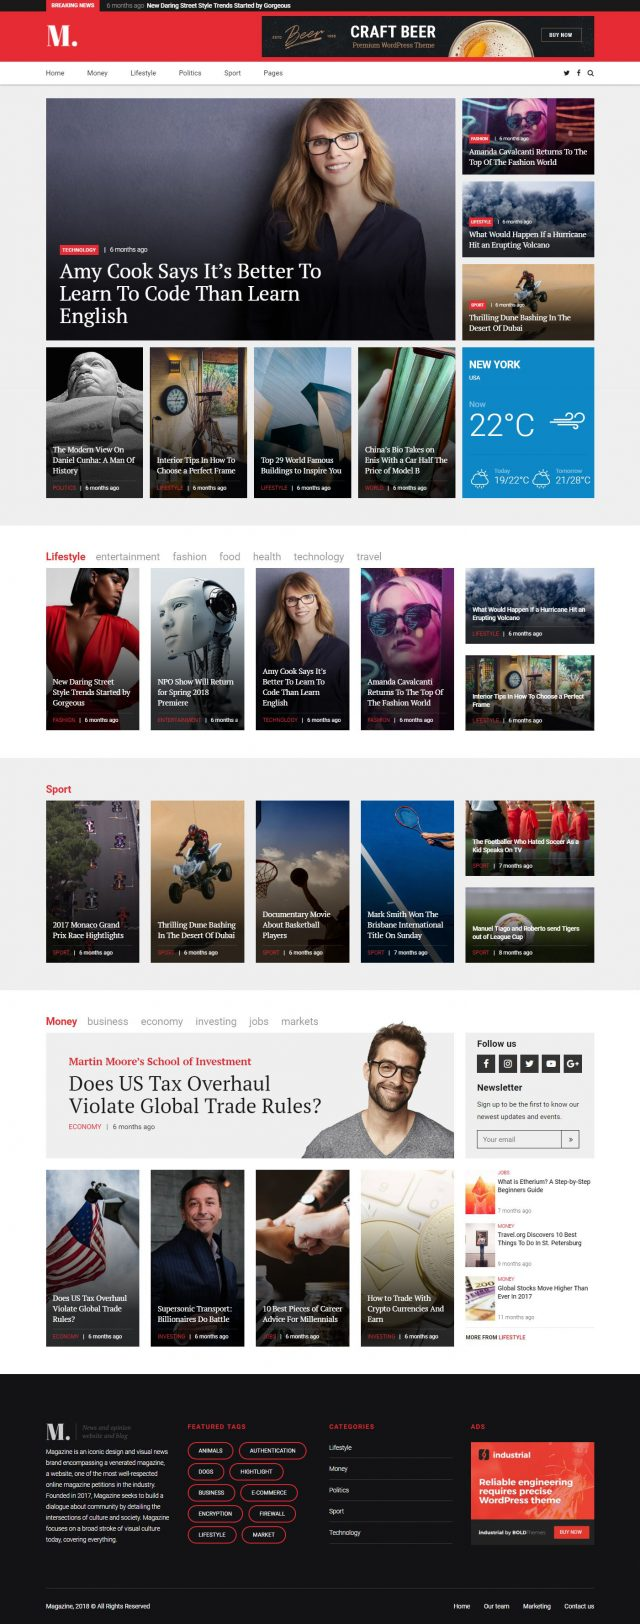 newstar wordpress theme magazine homepage layout 4